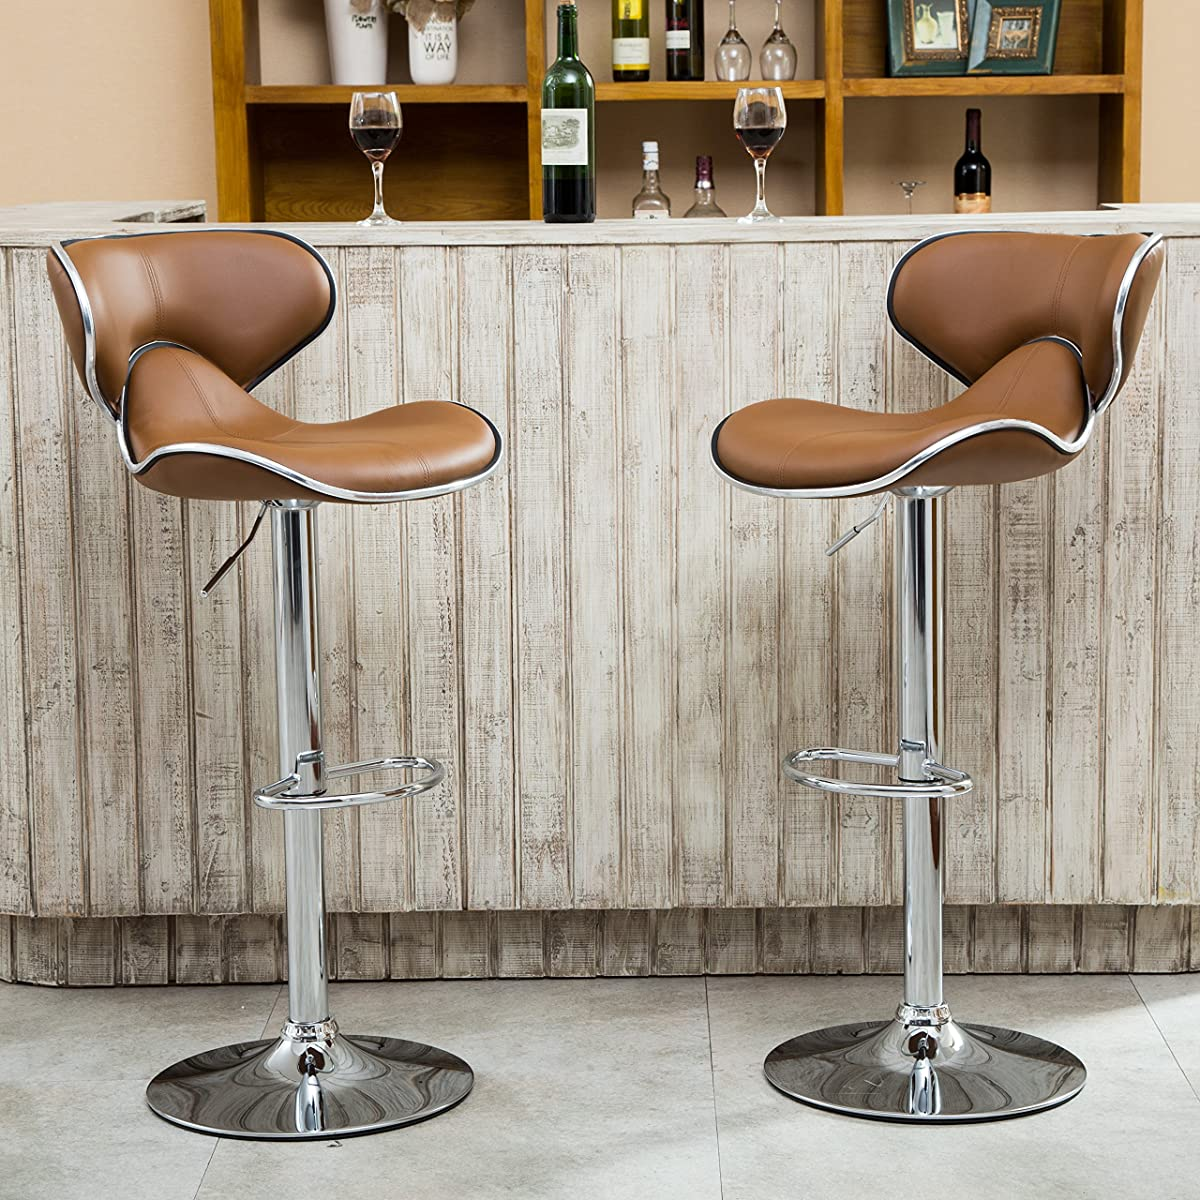 Roundhill Furniture Masaccio Cushioned Leatherette Upholstery Airlift Adjustable Swivel Barstool with Chrome Base, Set of 2, Caramel